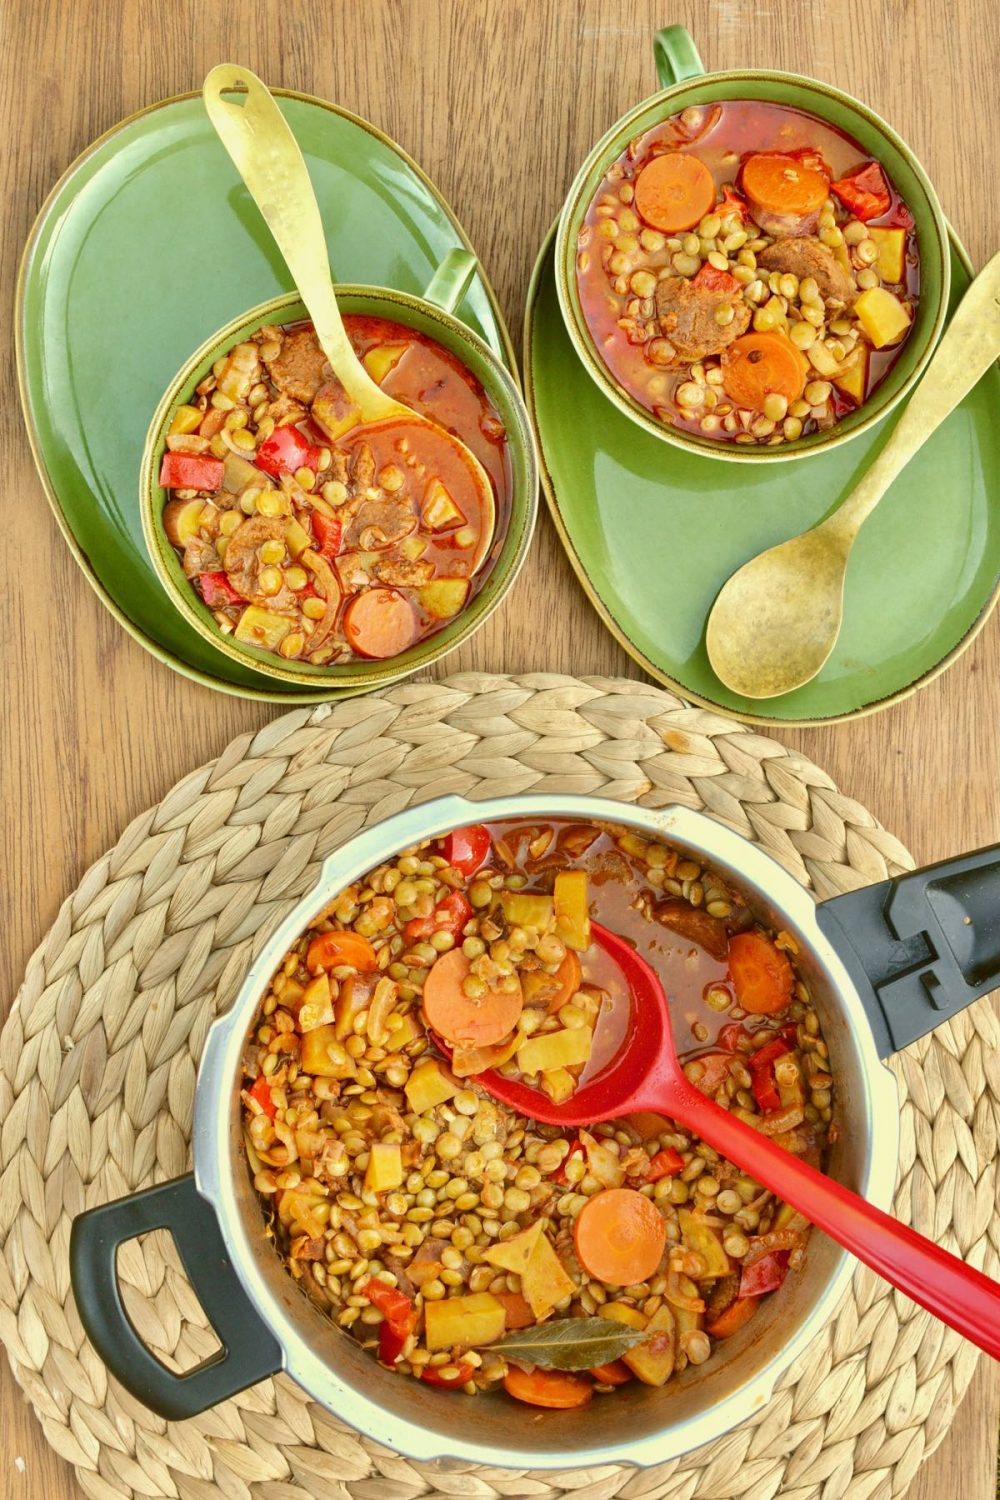 Two green bowls full of rich red coloured vegan lentil stew